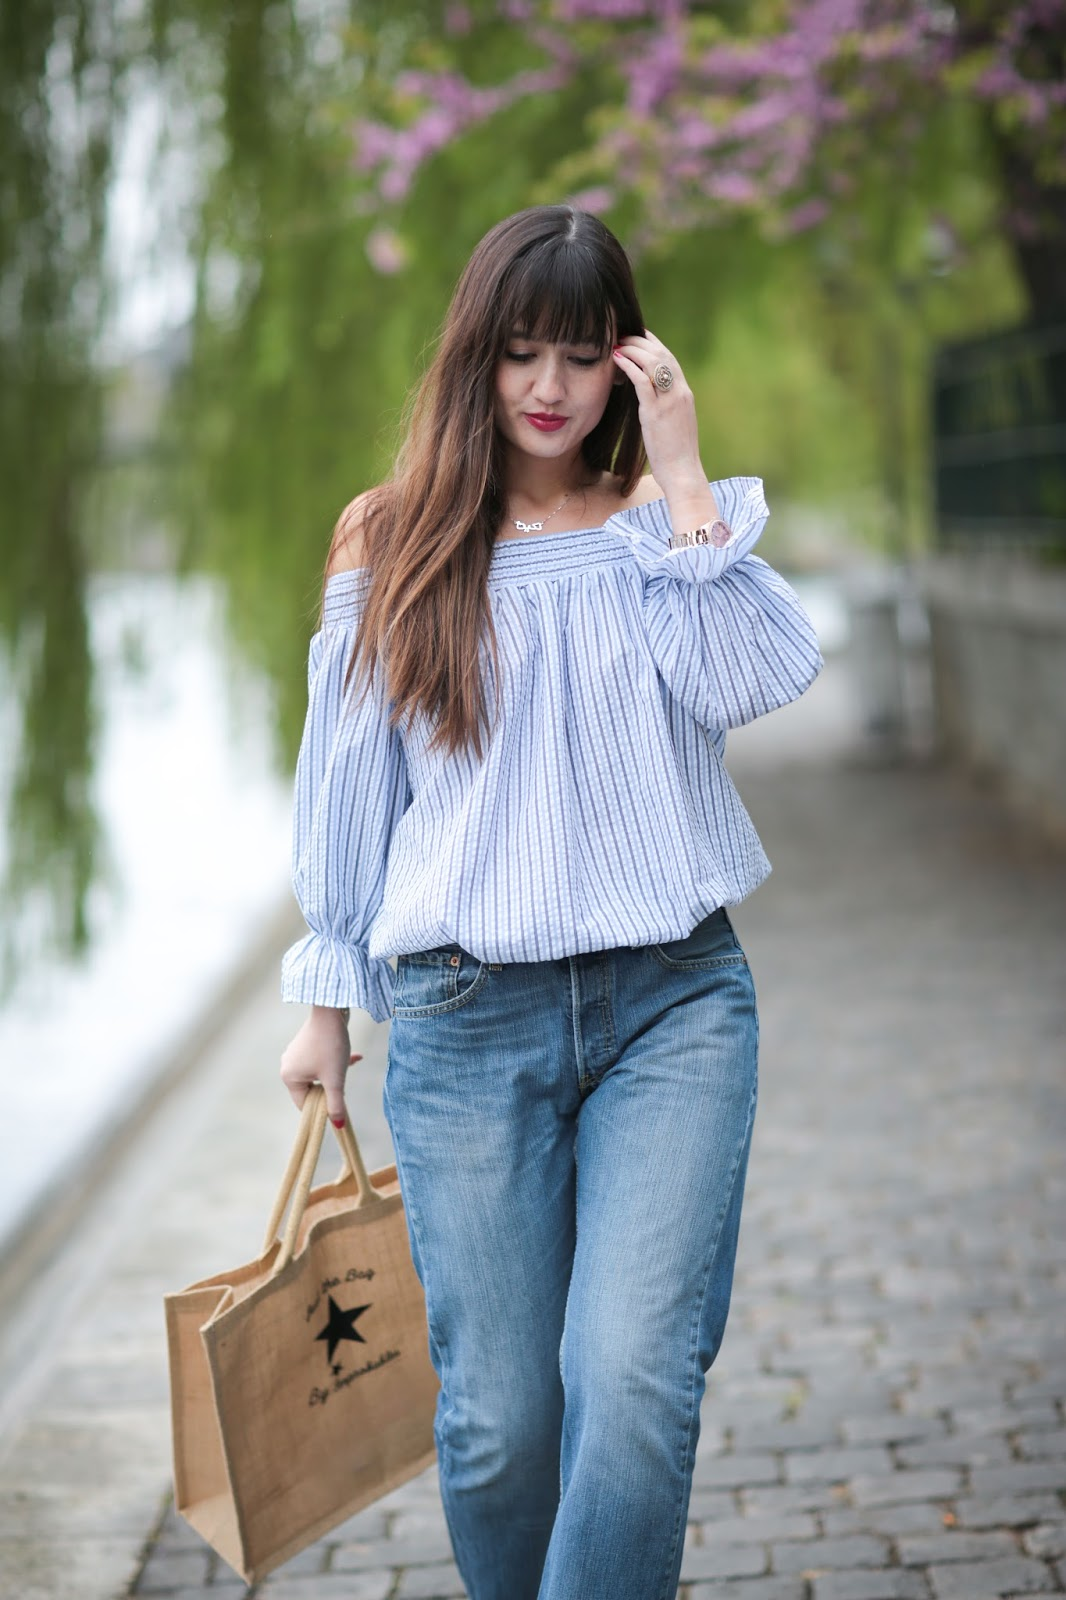 meetmeinparee, blogger, fashion, look, style, chic, spring style, off the shoulder top